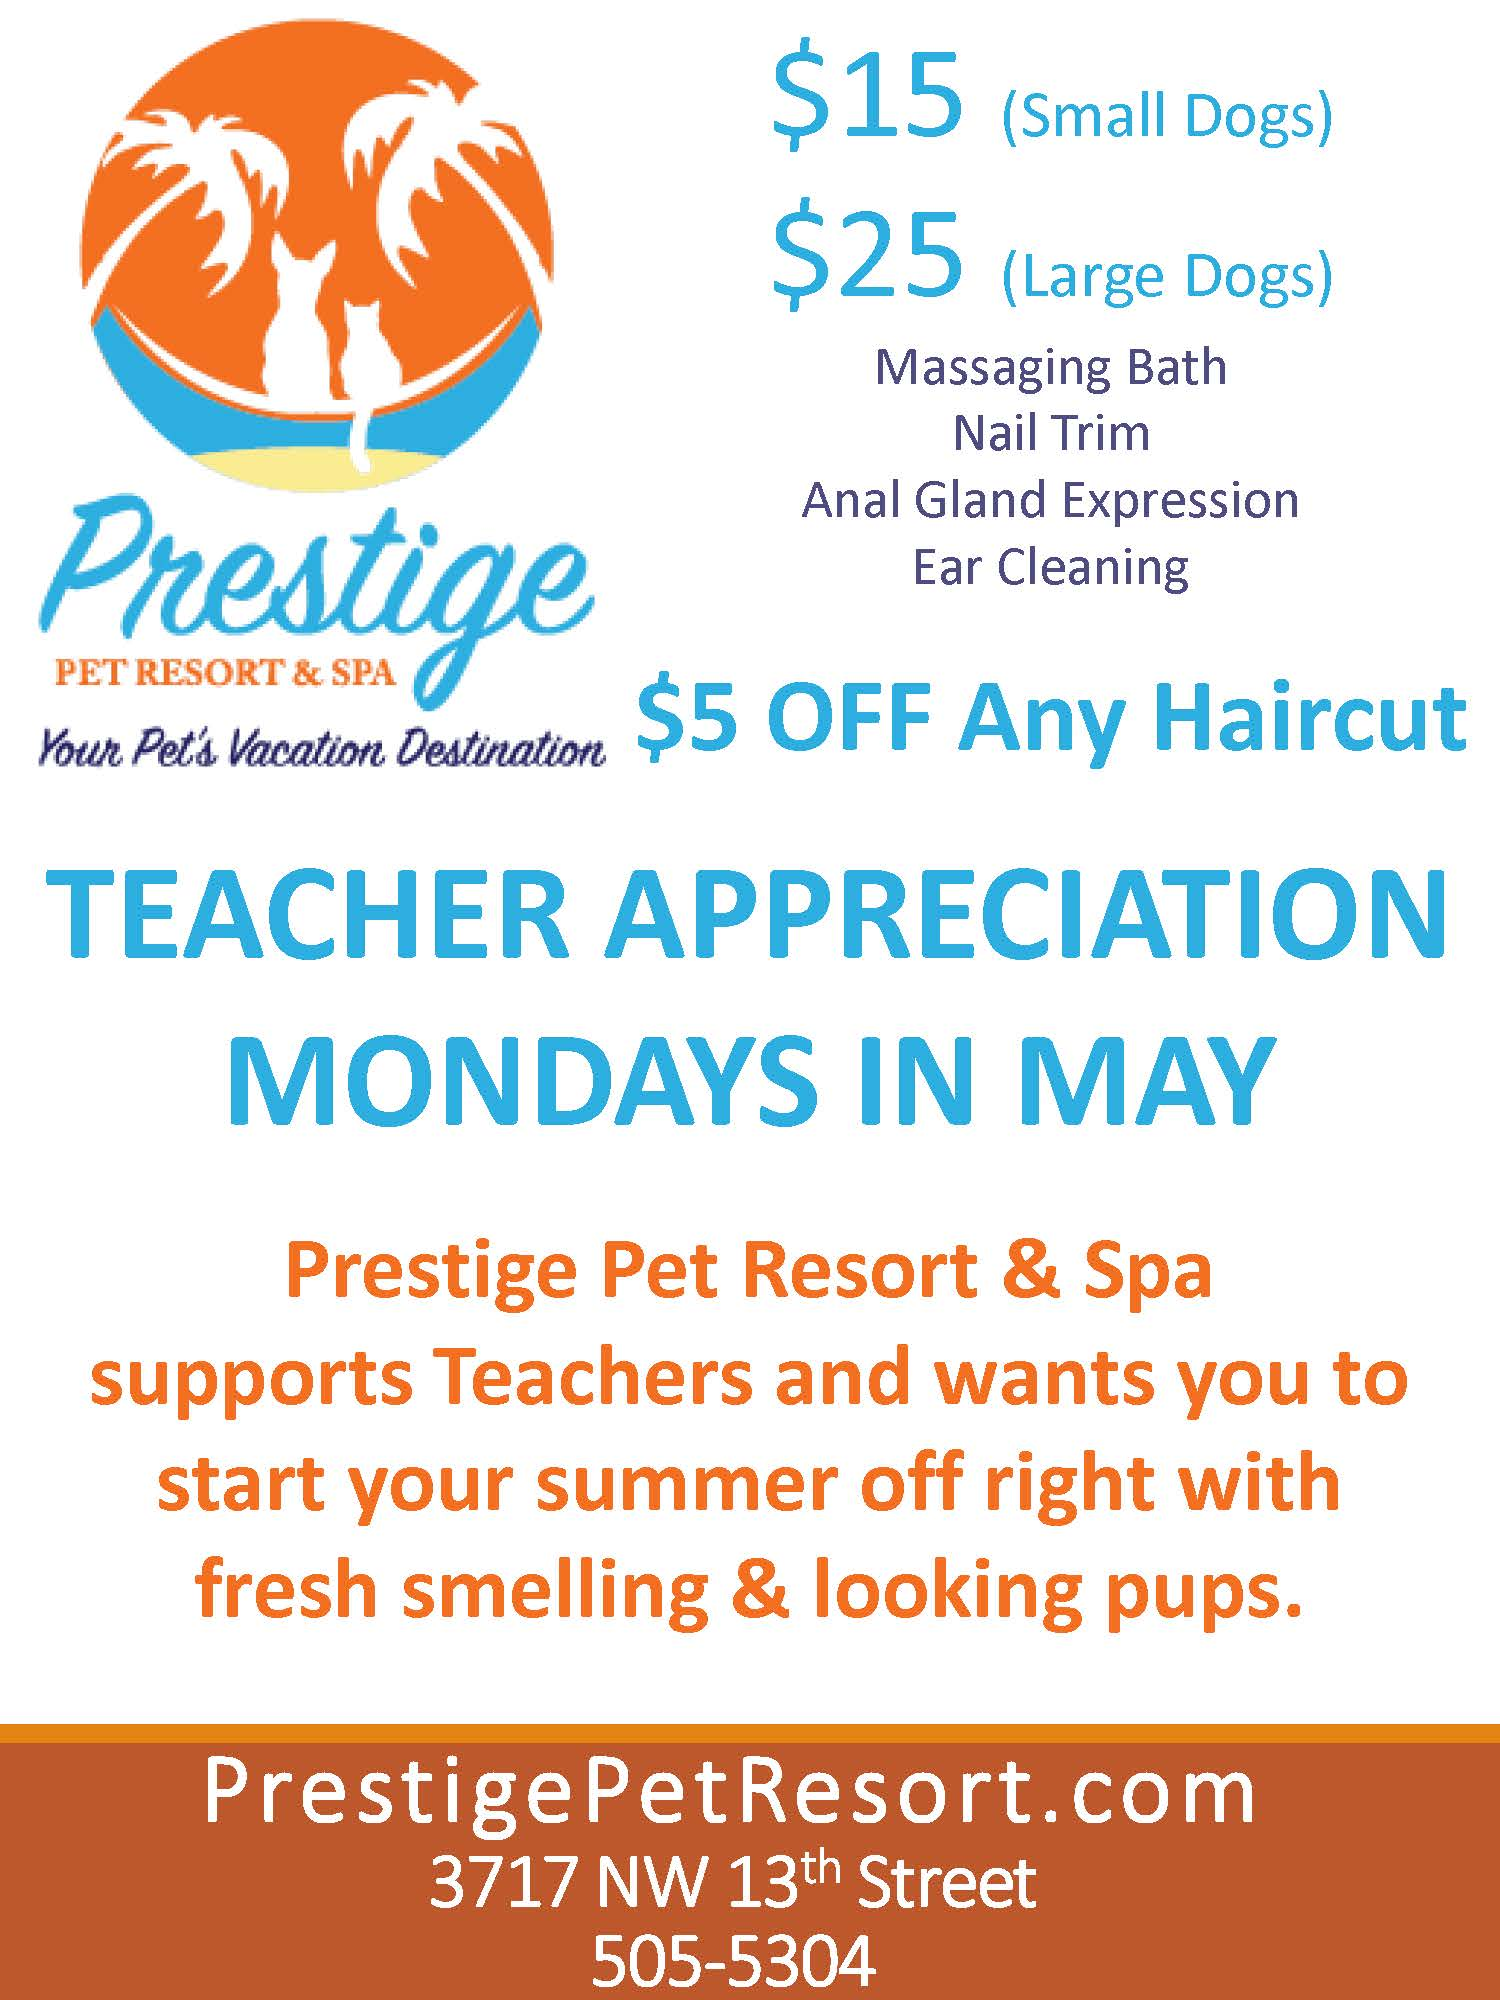 Teacher Appreciation Grooming Specials - Mondays this Summer